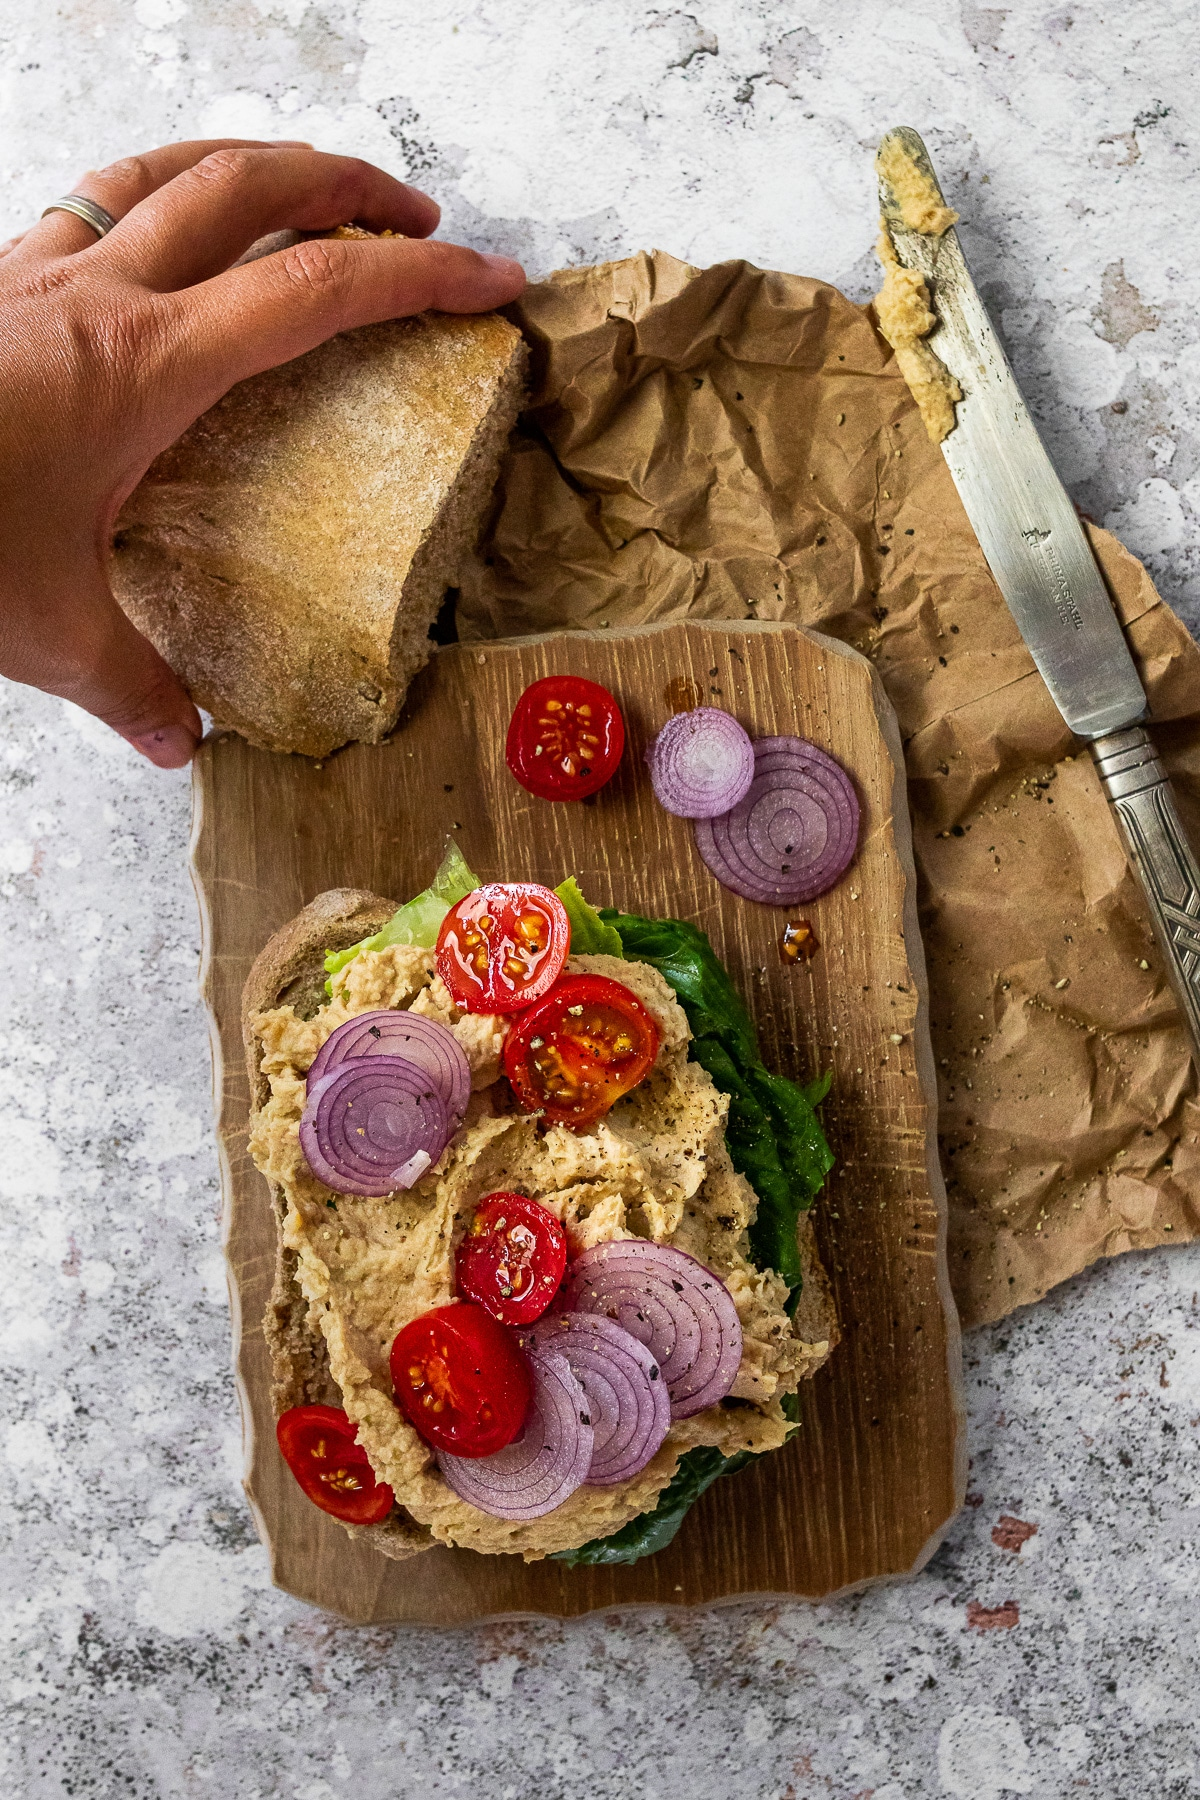 Bird view of an open vegan tuna sandwich laying on a wooden board. With a knive on the side and one bun half above.